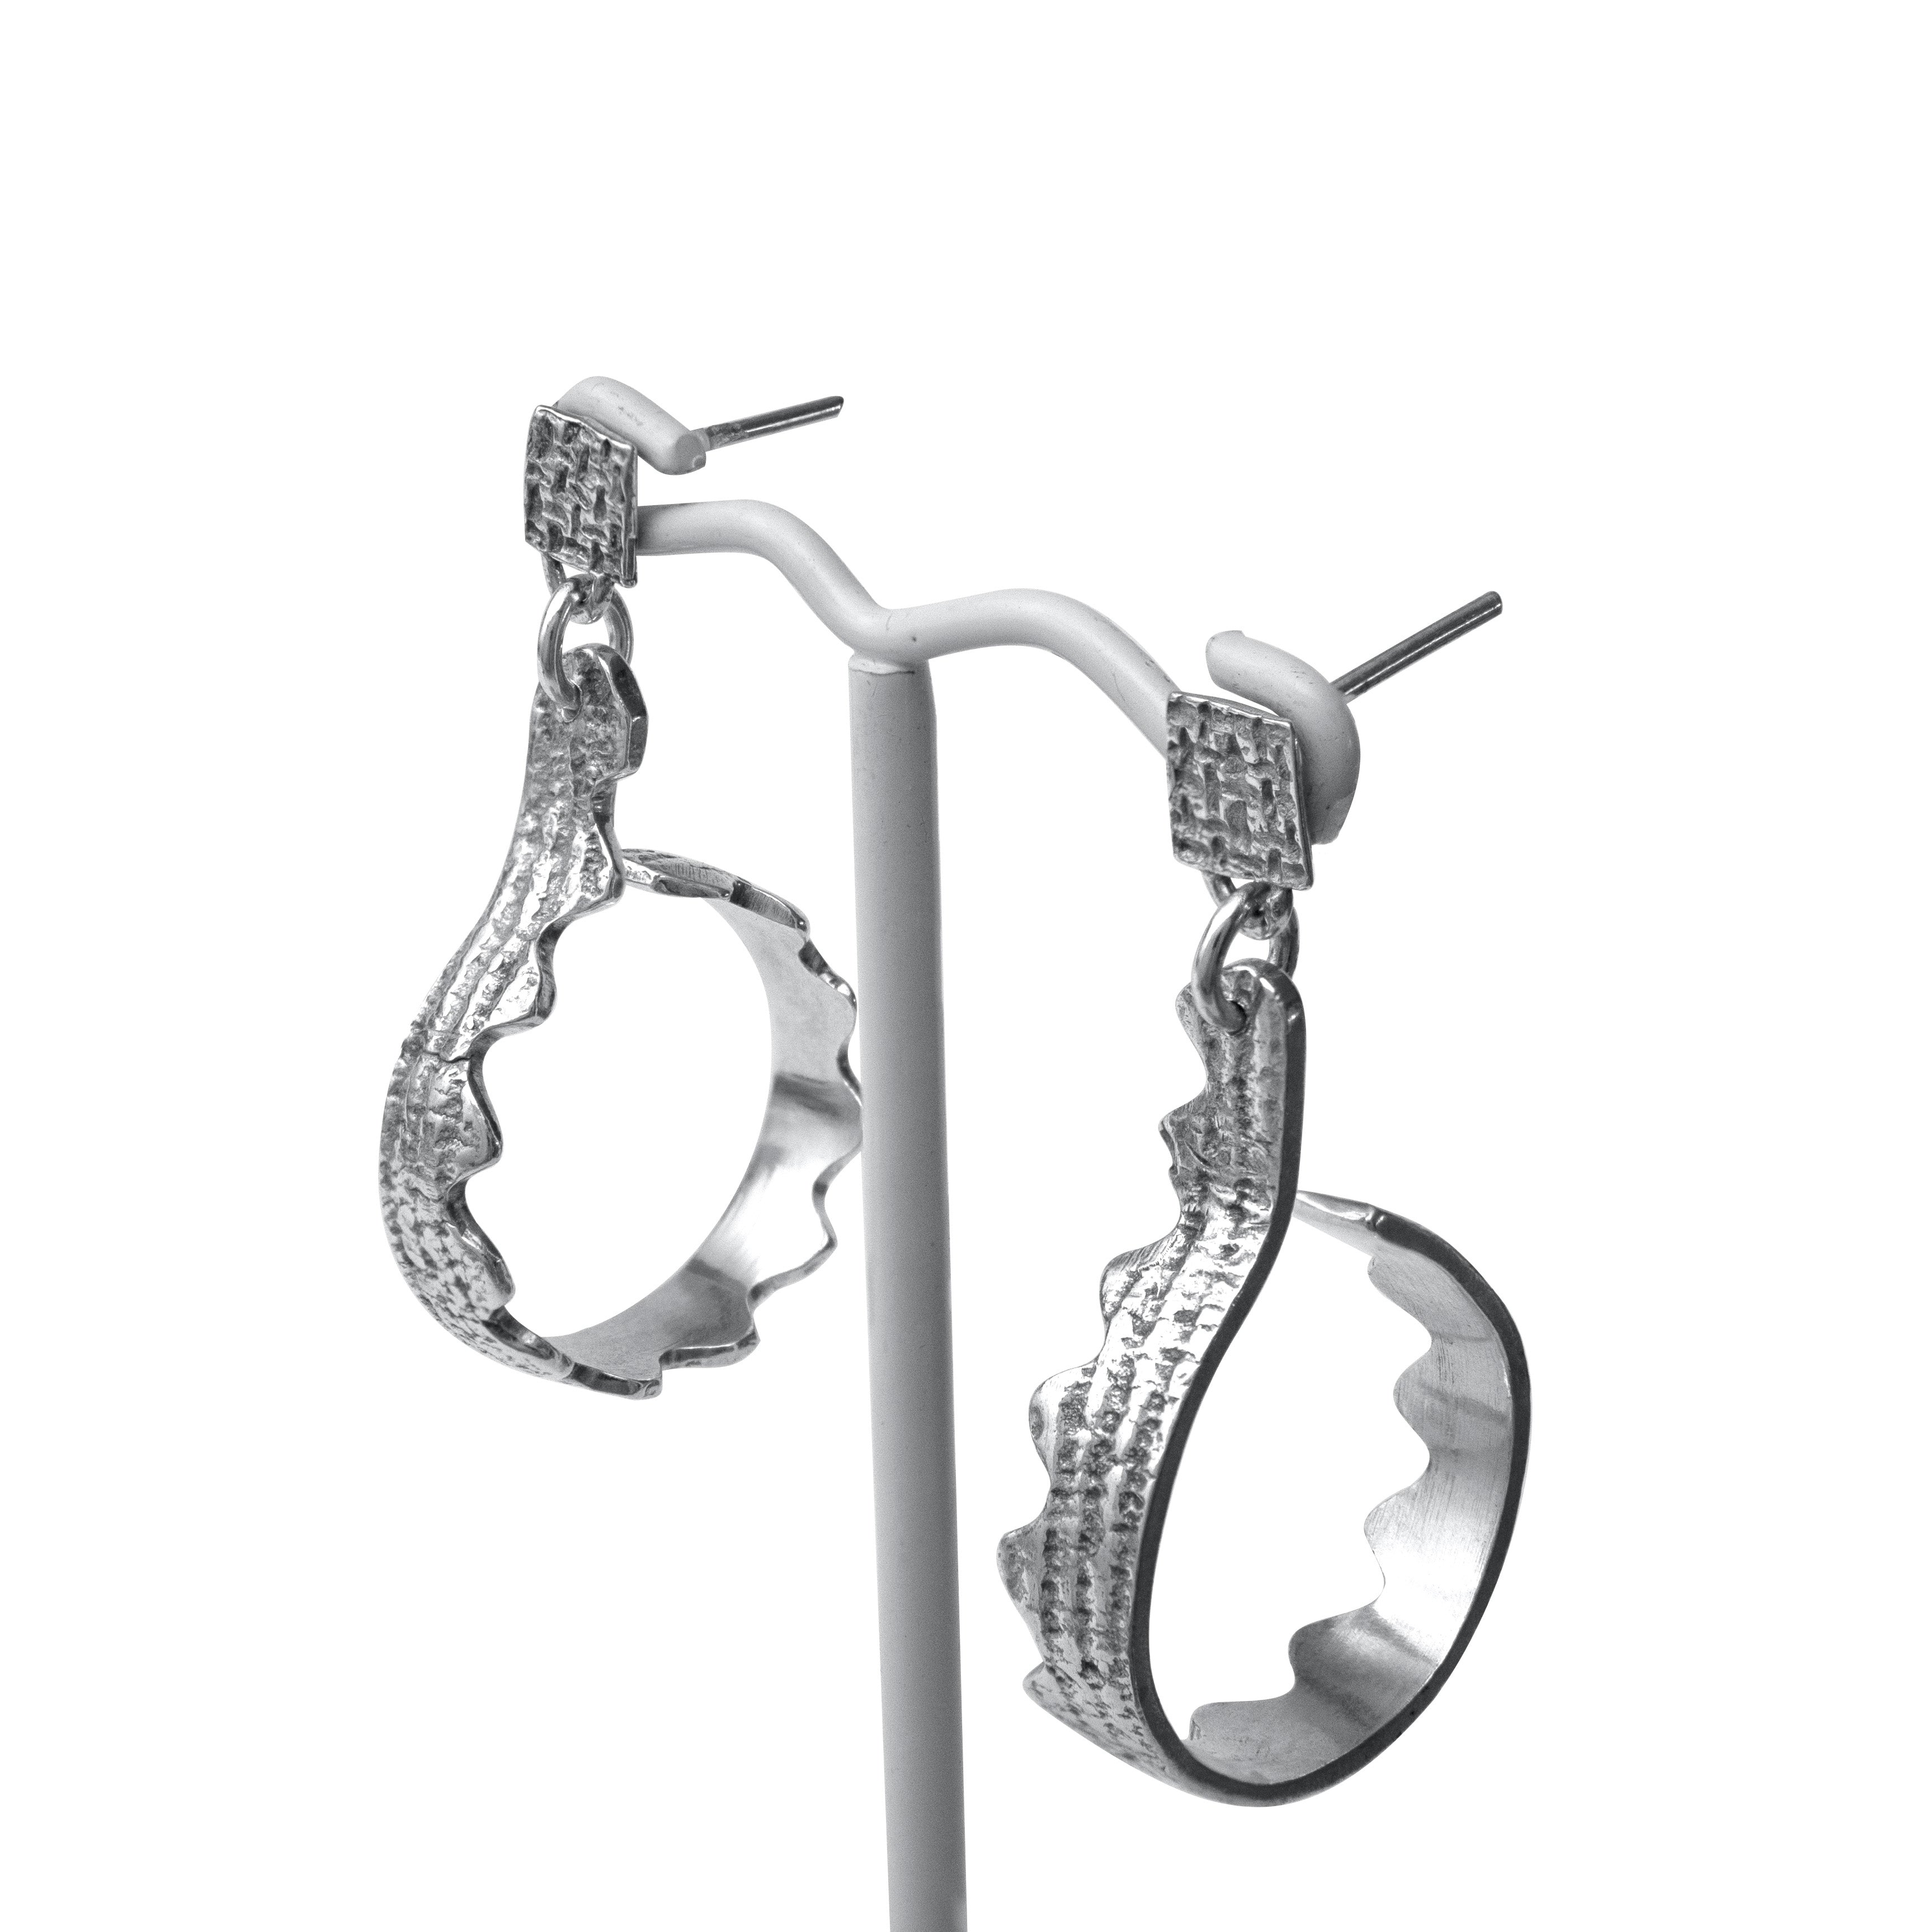 SIERRA Silver Earrings - Katerina Roukouna